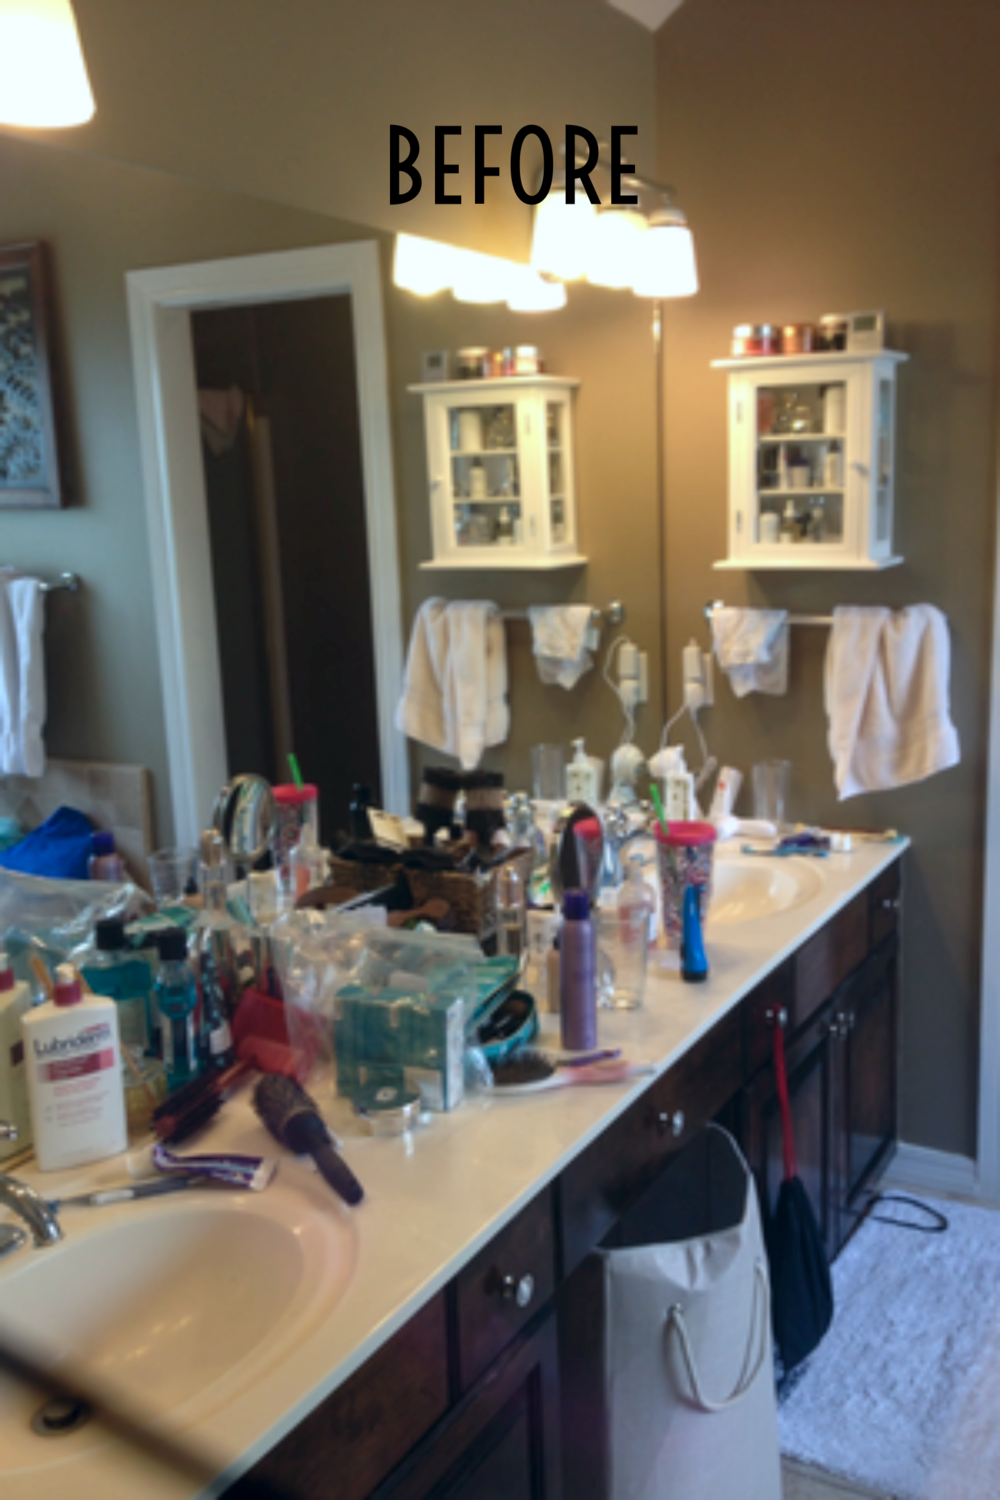 B bathroom counter before.png